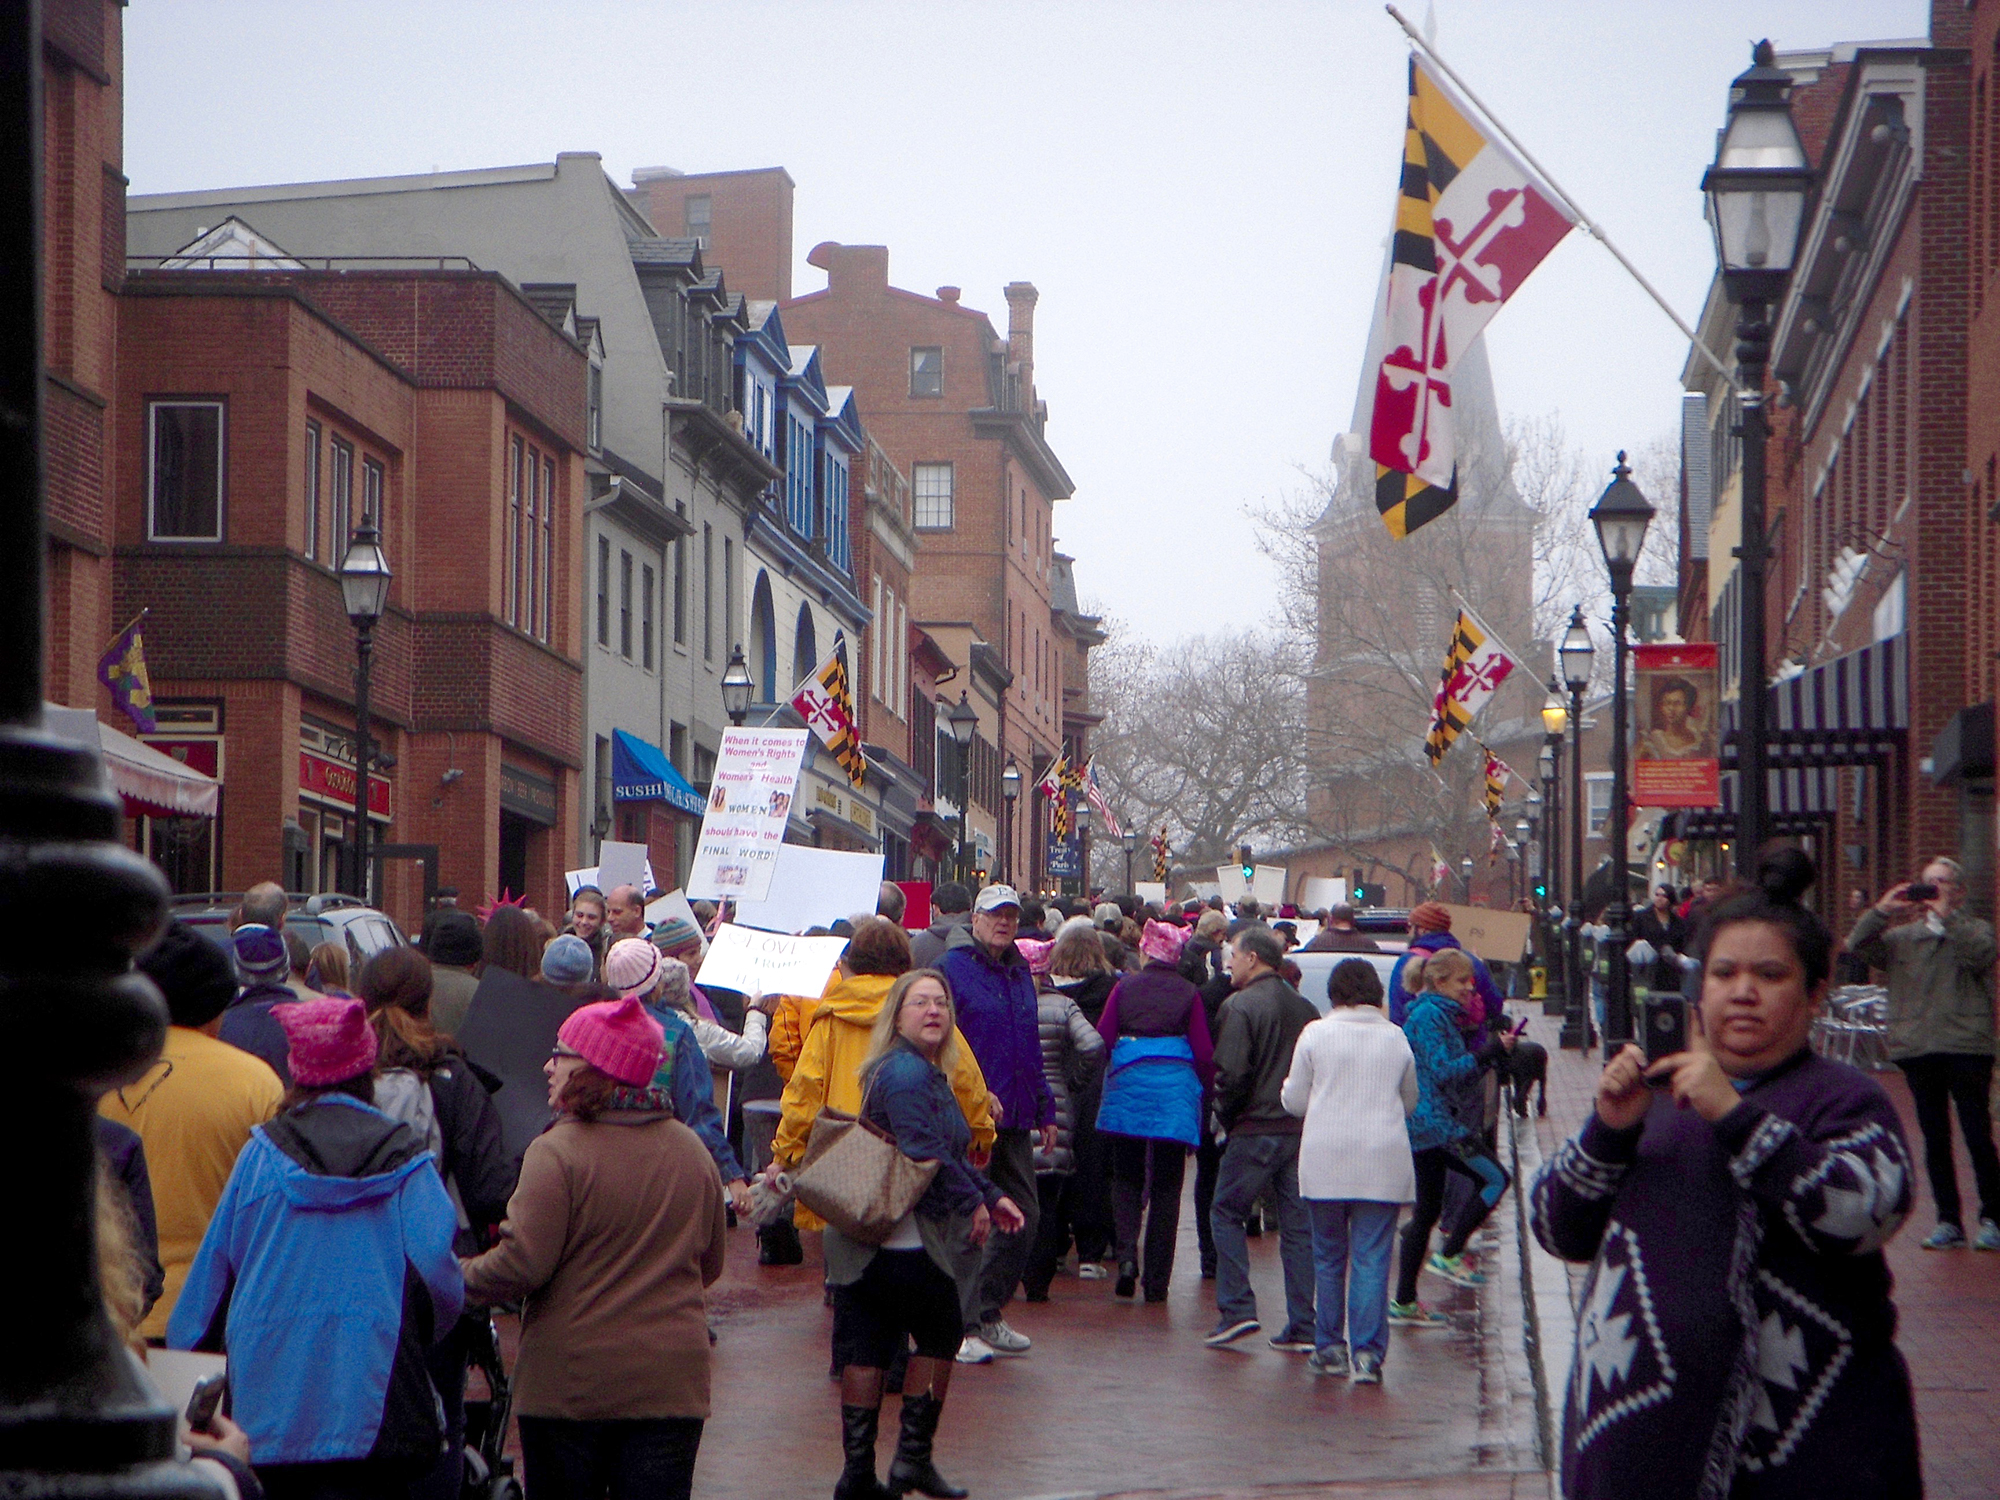 march on Annapolis, MD state capital